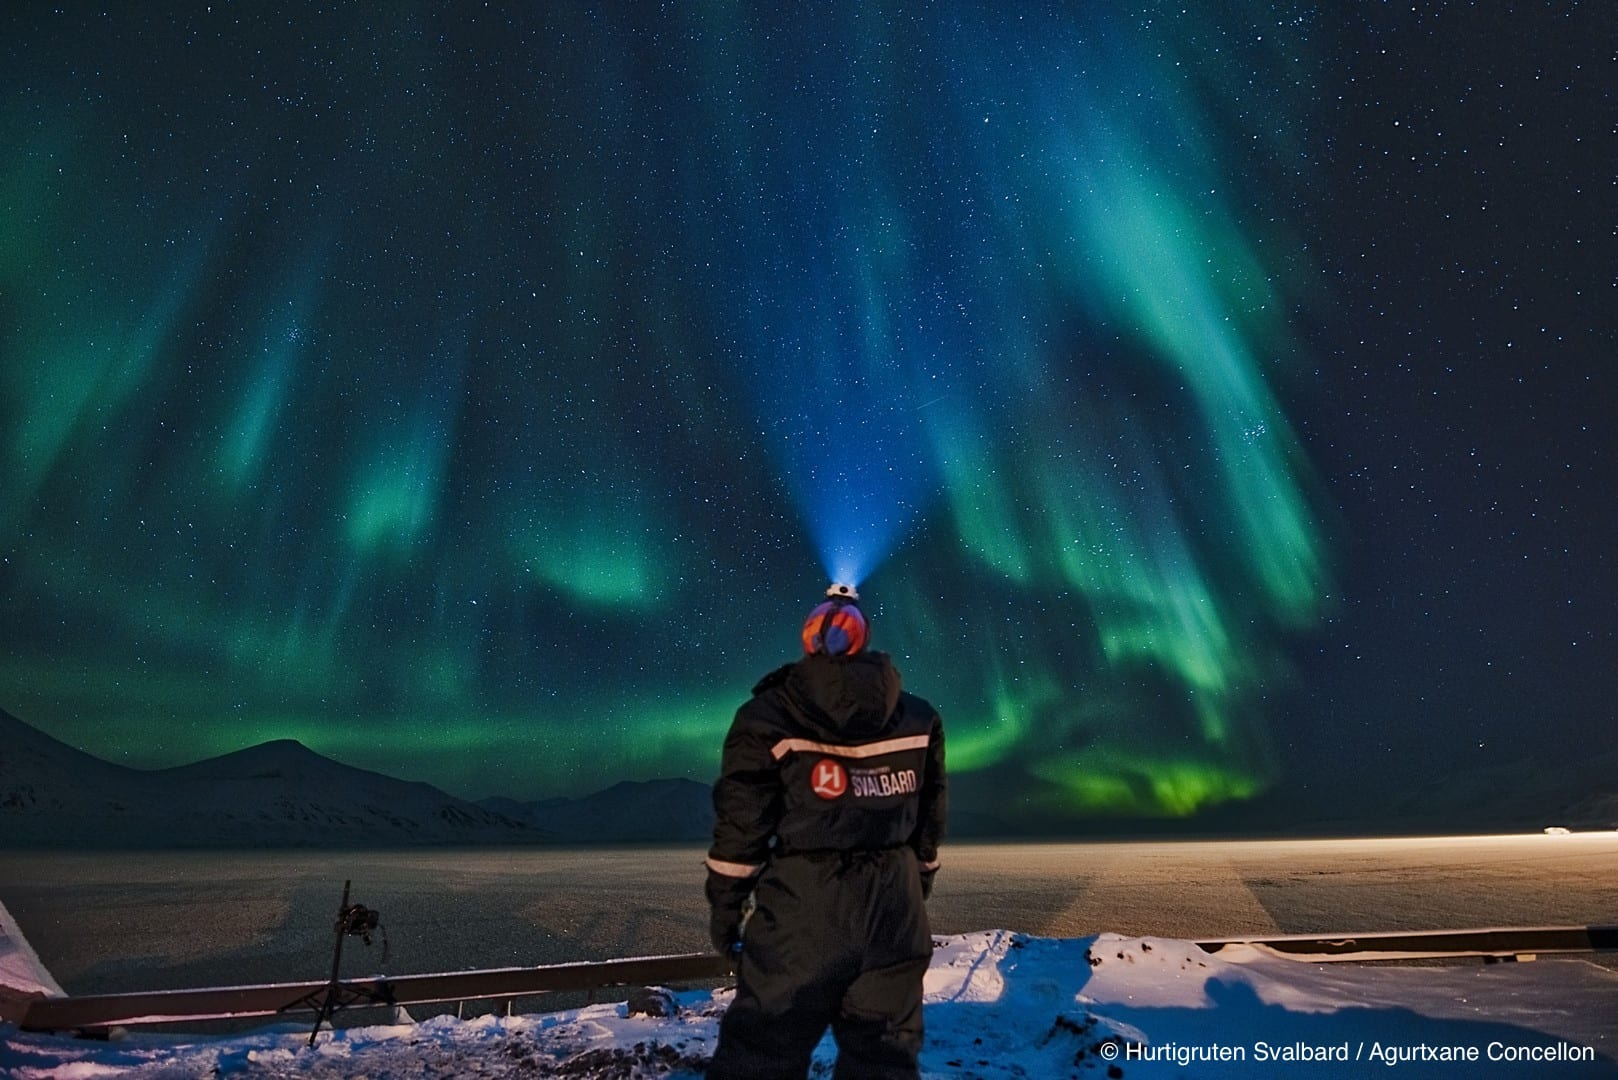 Man with back facing camera and visible Hurtigruten Svalbard suit looking up at green northern lights show in starry night sky with head torch in winter in Svalbard, Arctic Norway